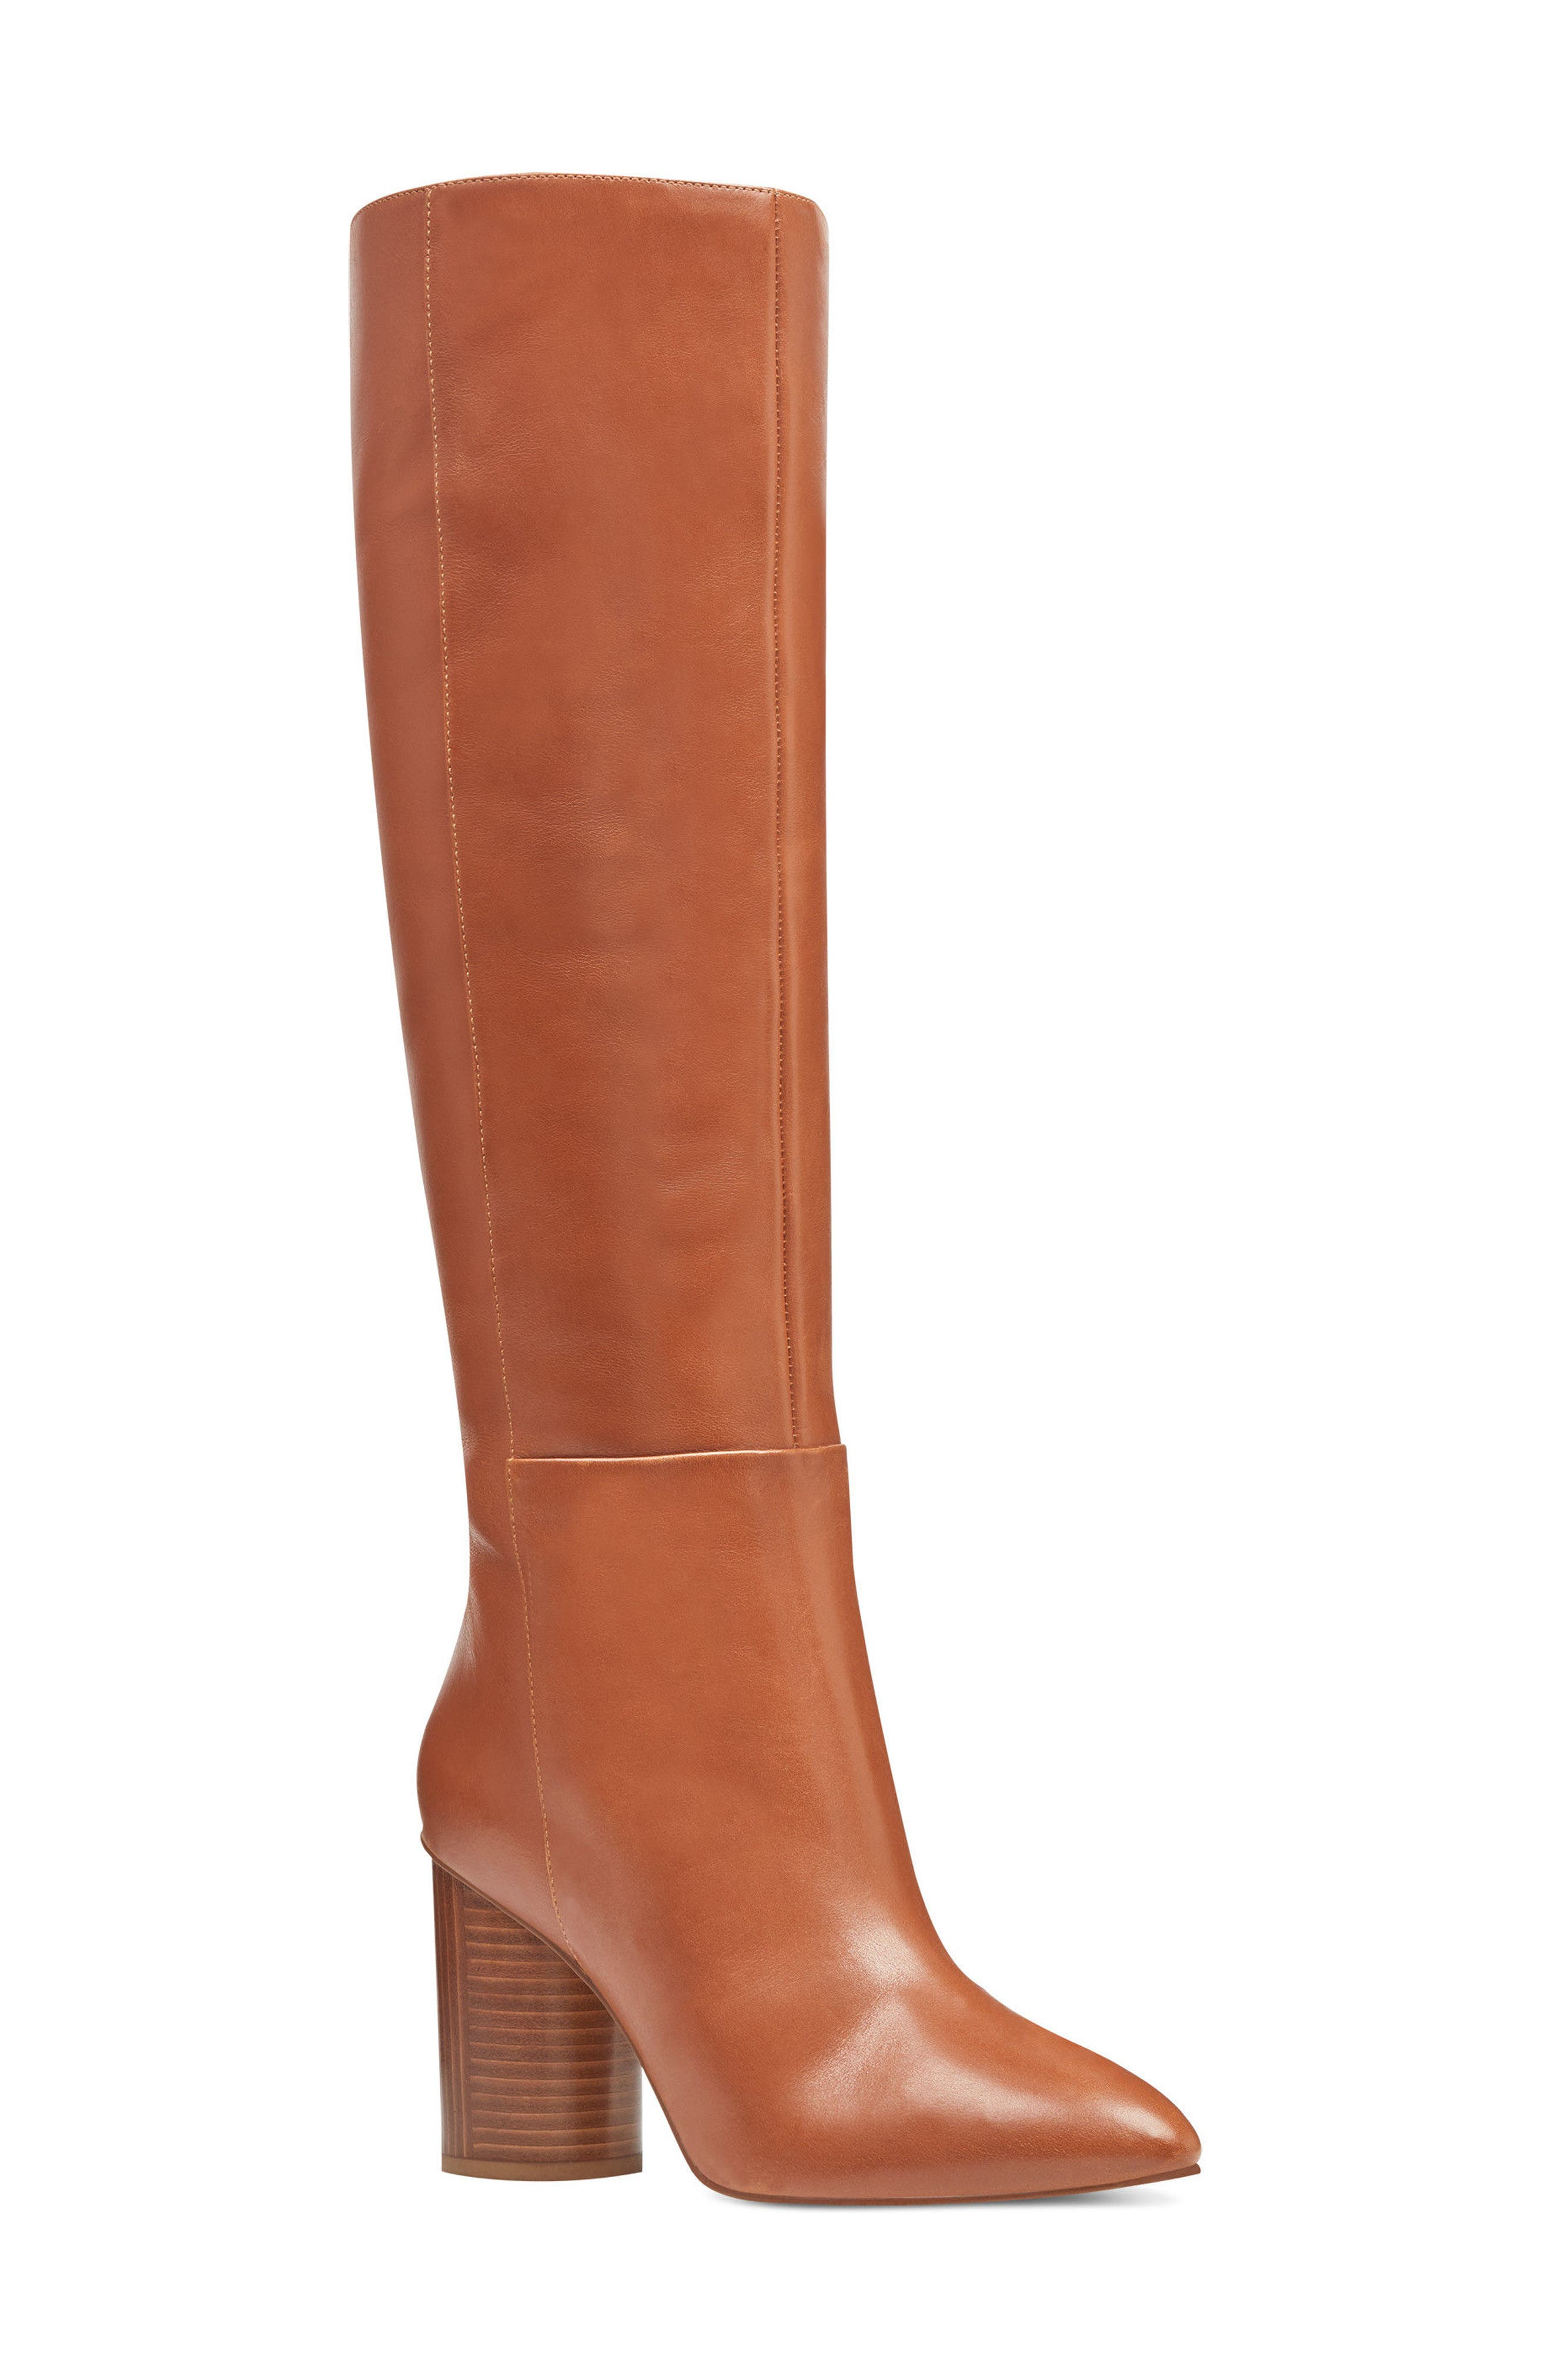 Christie Knee High Boot,                         Main,                         color, Dark Natural Leather